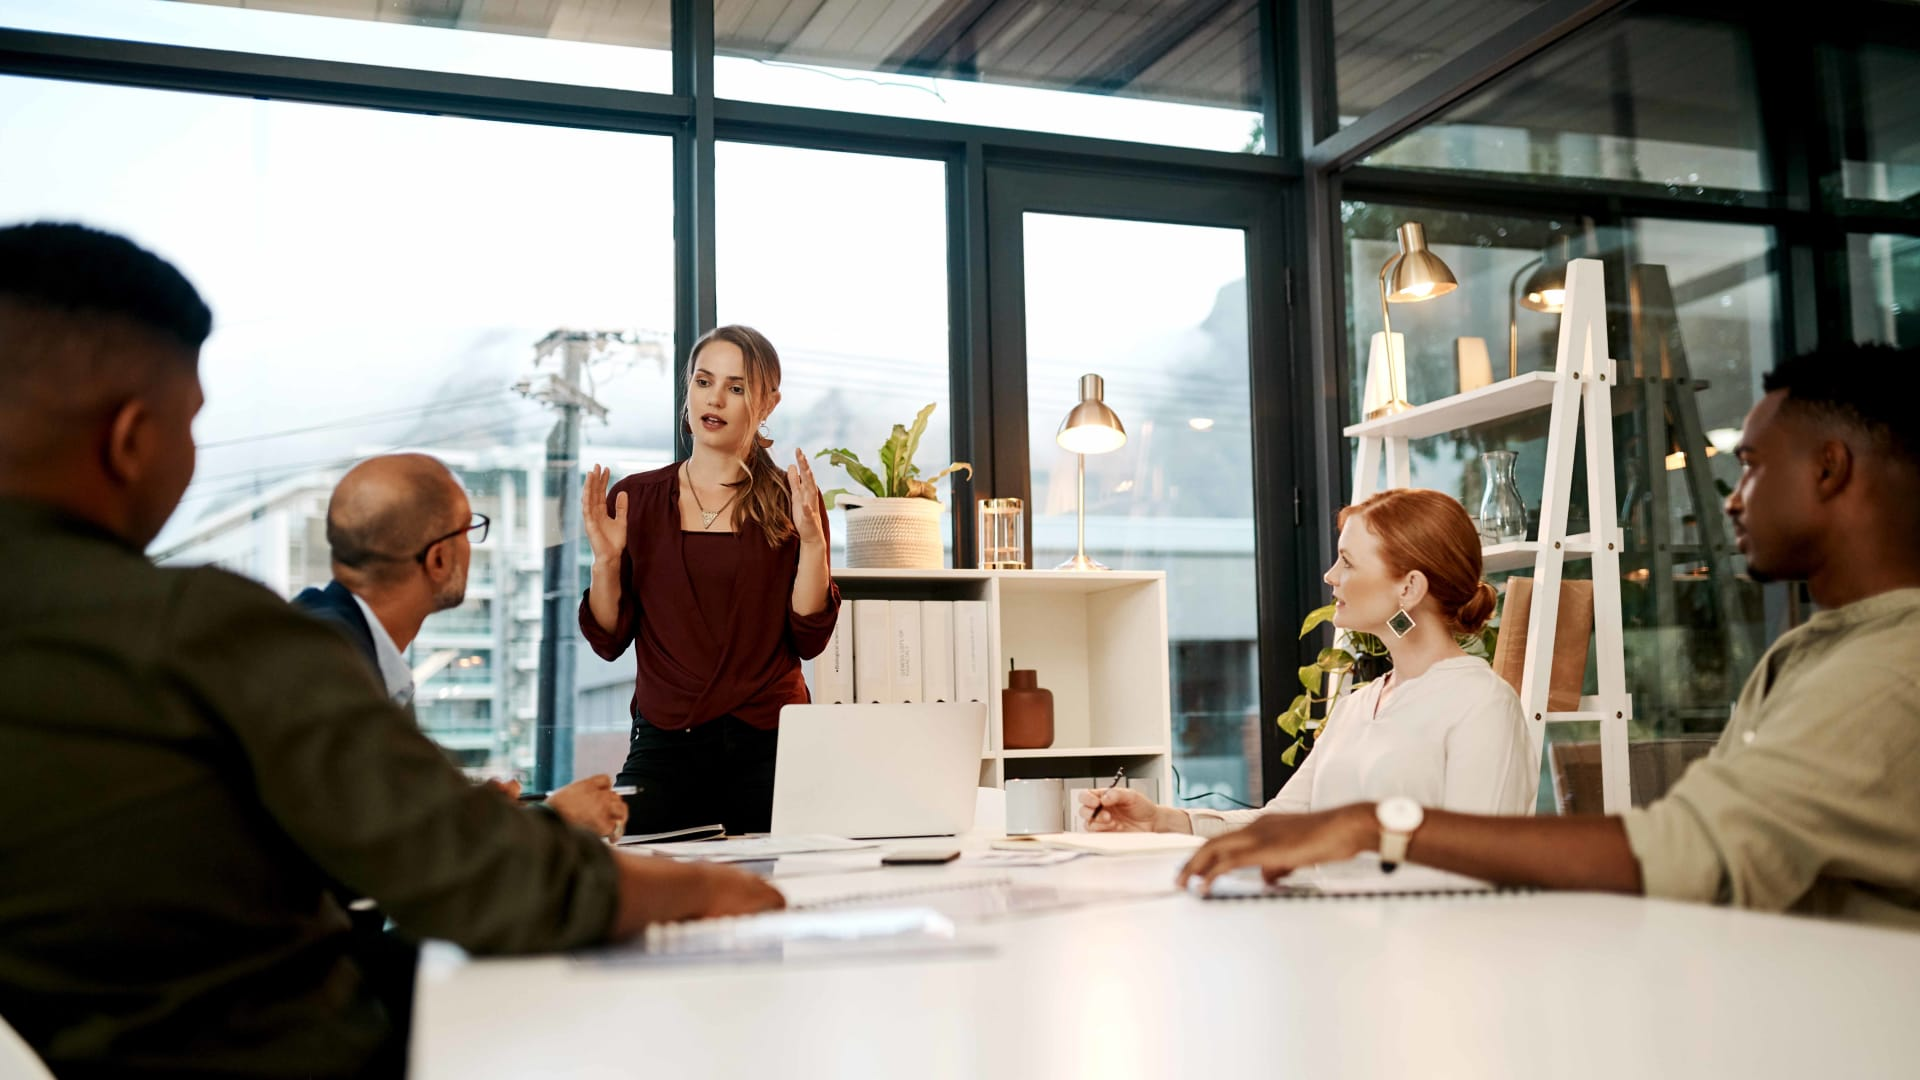 10 Strategies to Acquire the Trust You Need to Build a New Venture